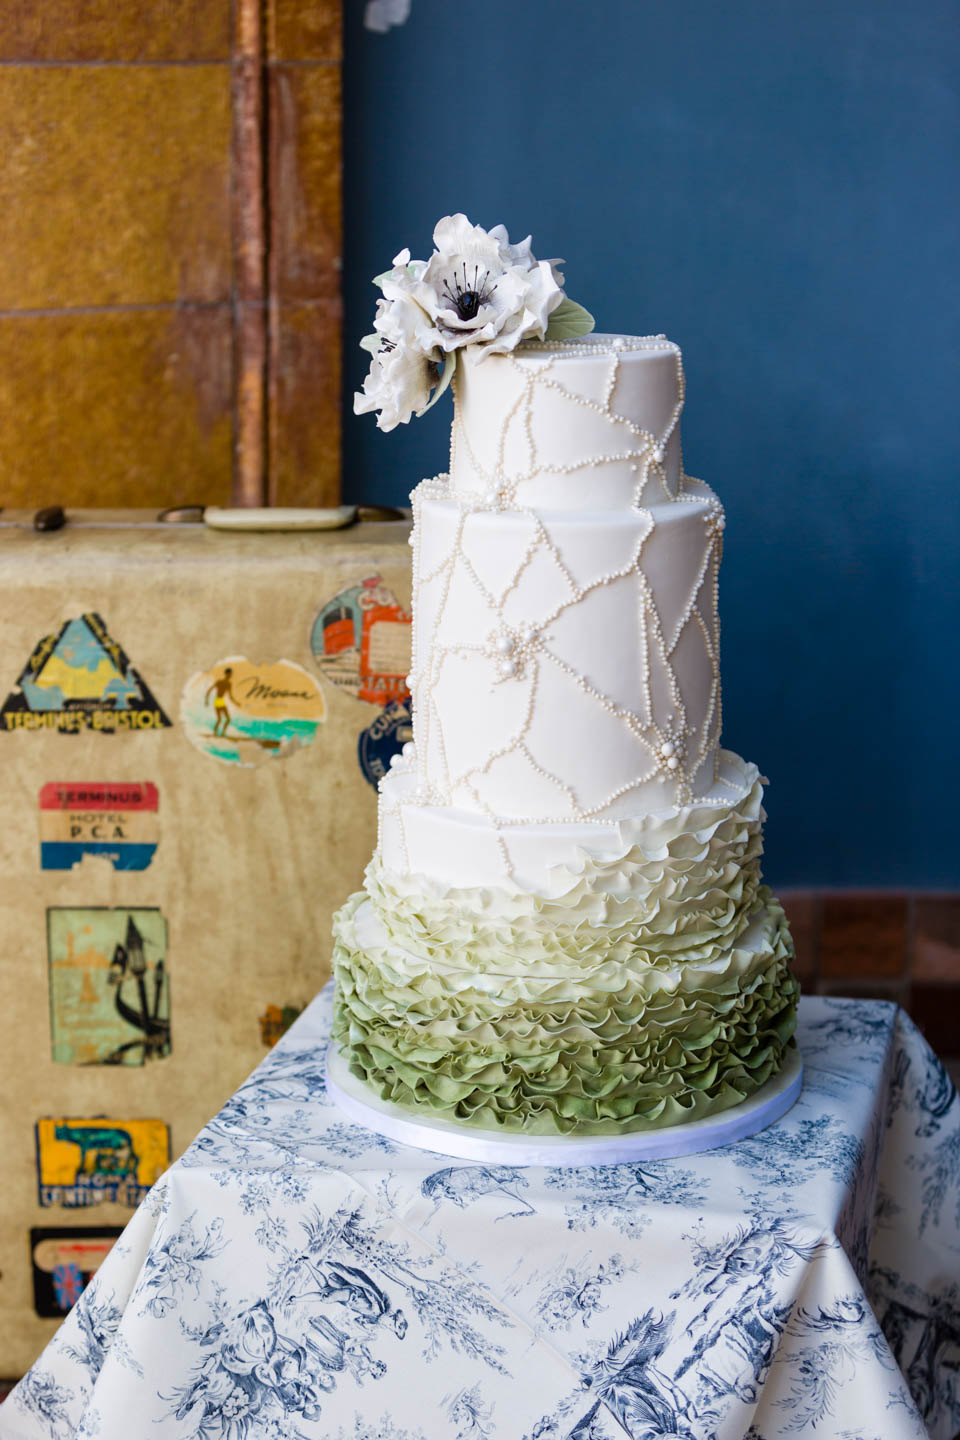 Wedding Cake and an antique suitcase